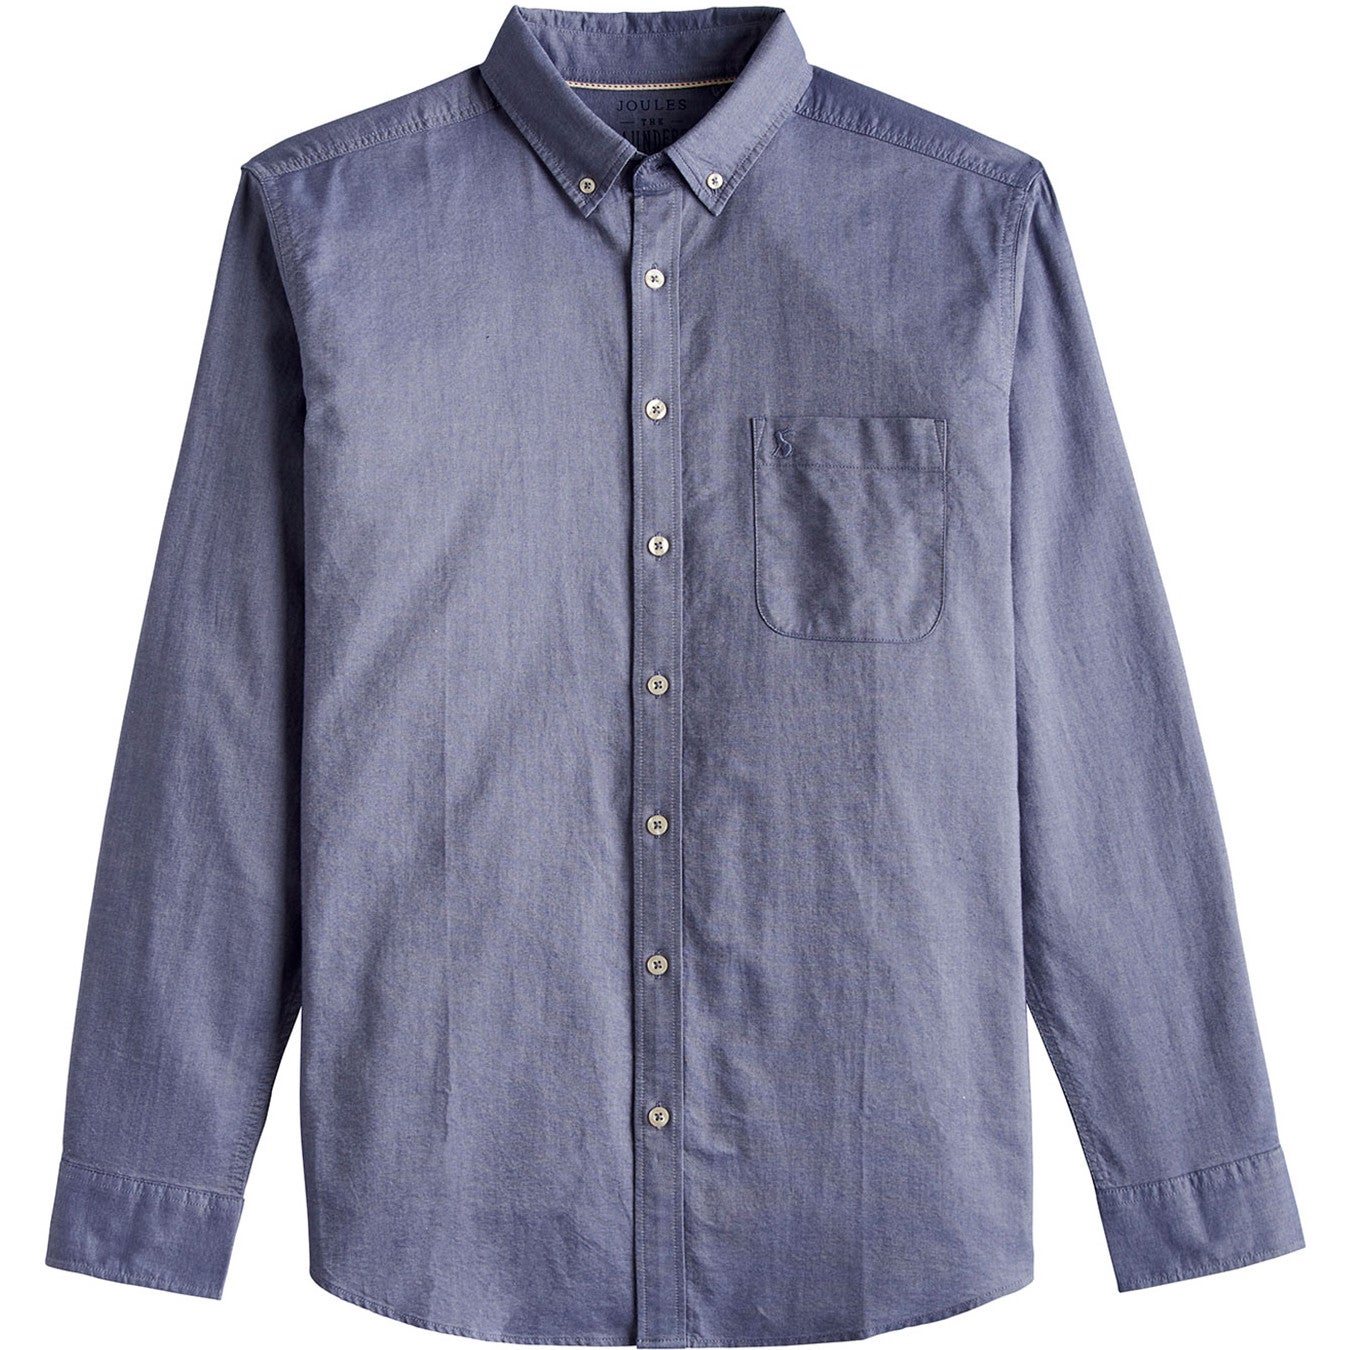 Joules Men's Laundered Oxford Classic Fit Shirt